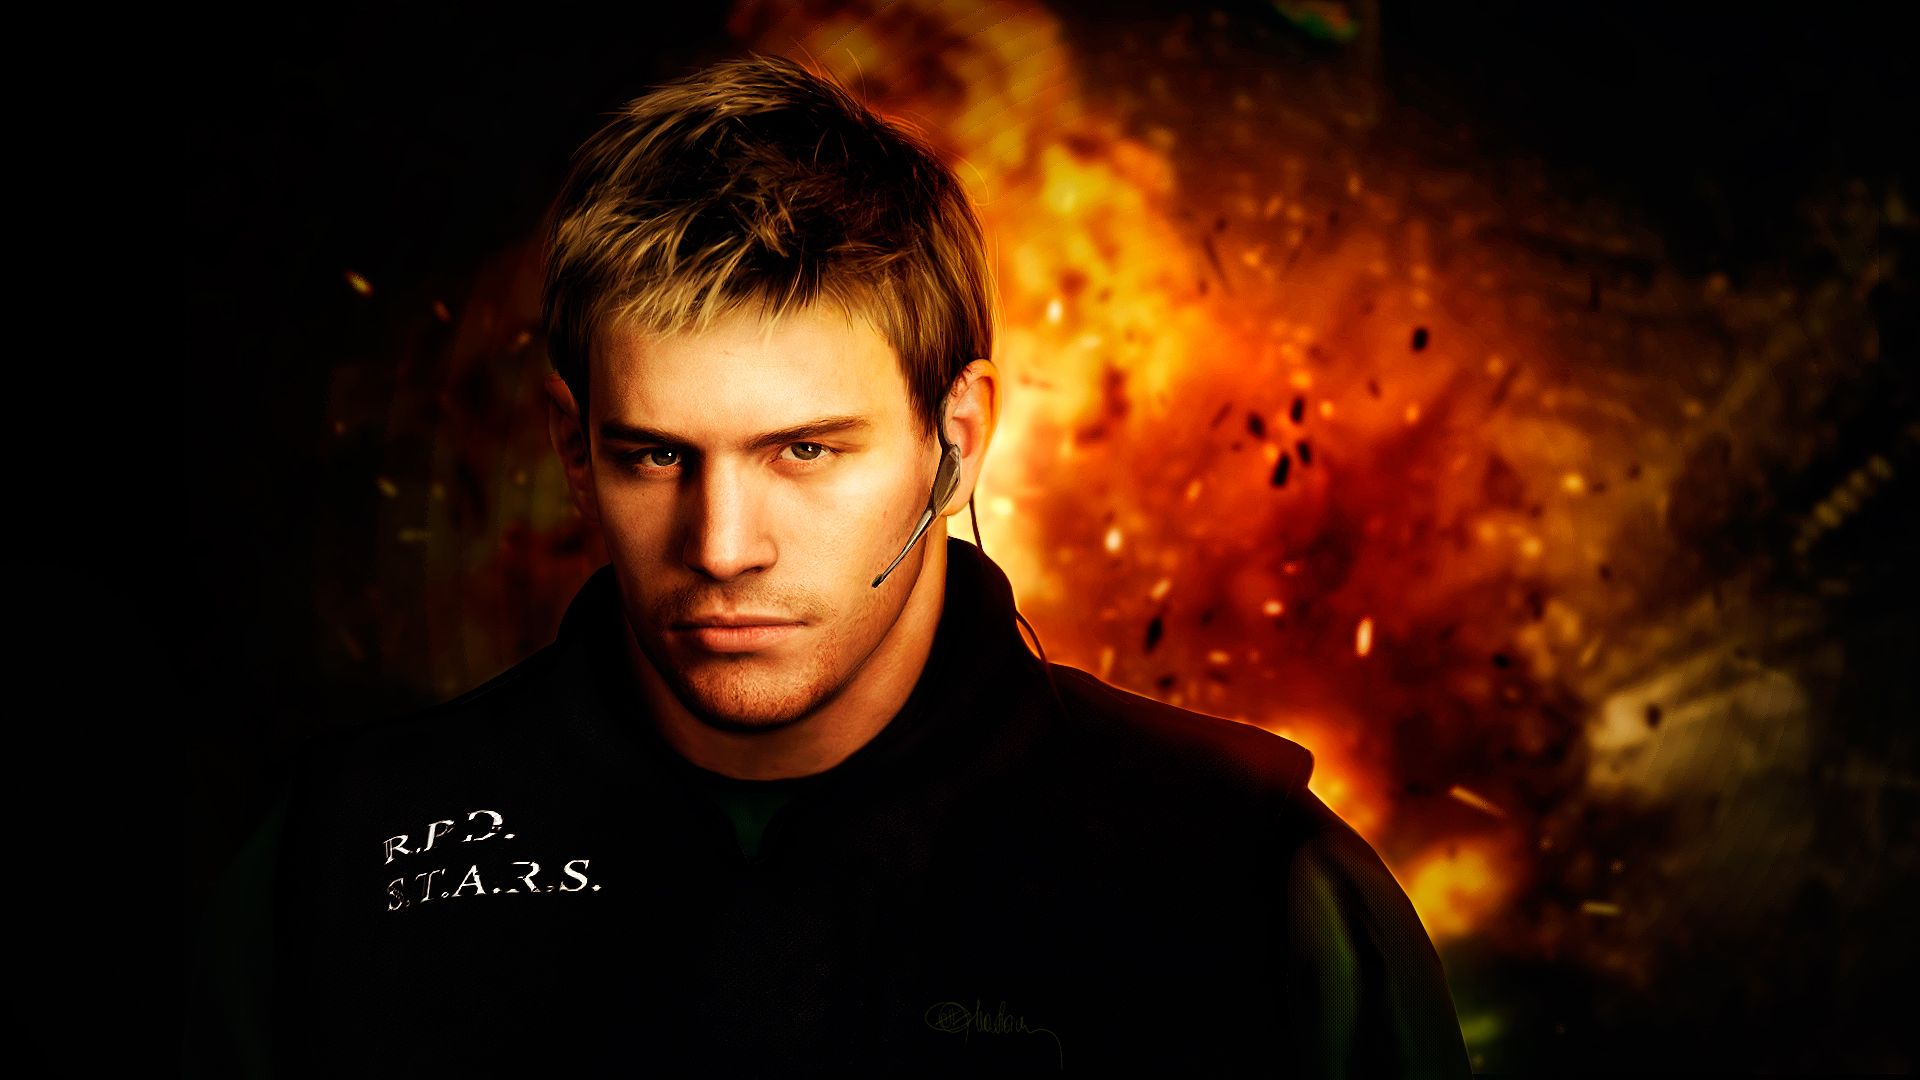 Photorealistic Chris Redfield Resident Evil 5 By Push Pulse